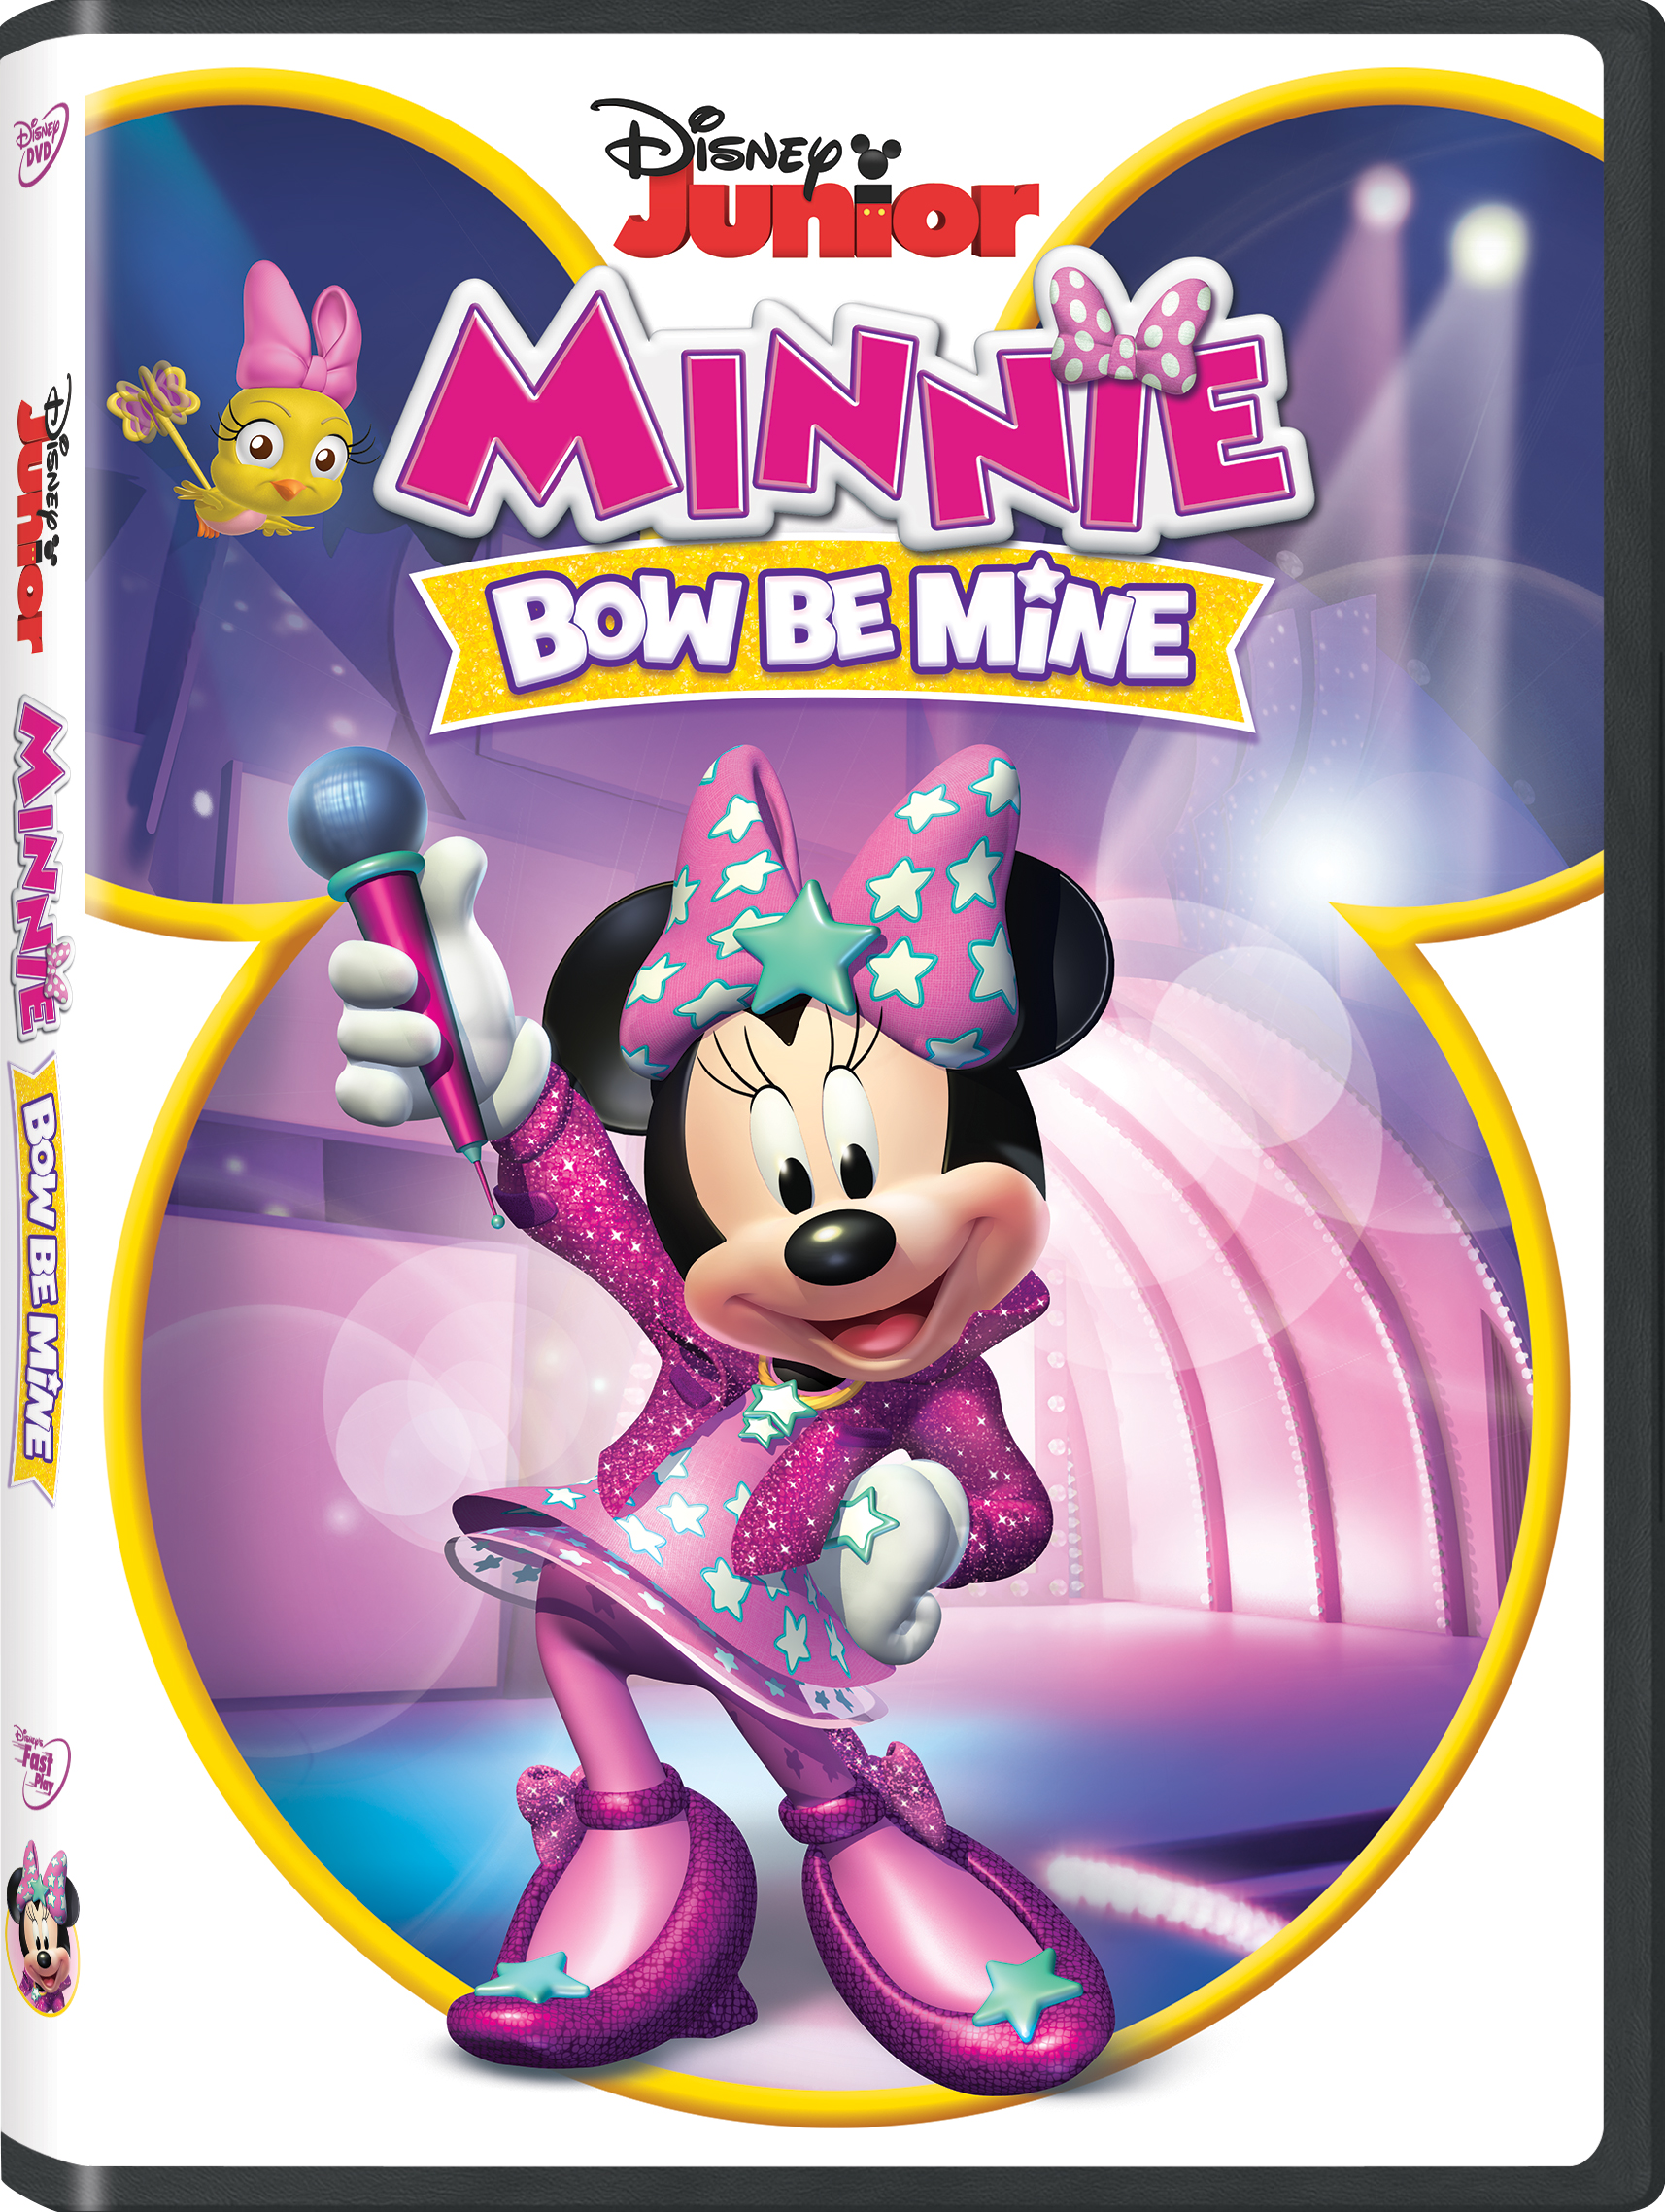 Minnie Bow Be Mine DVD Giveaway #Disney #MinnieBowBeMine #movies #ad